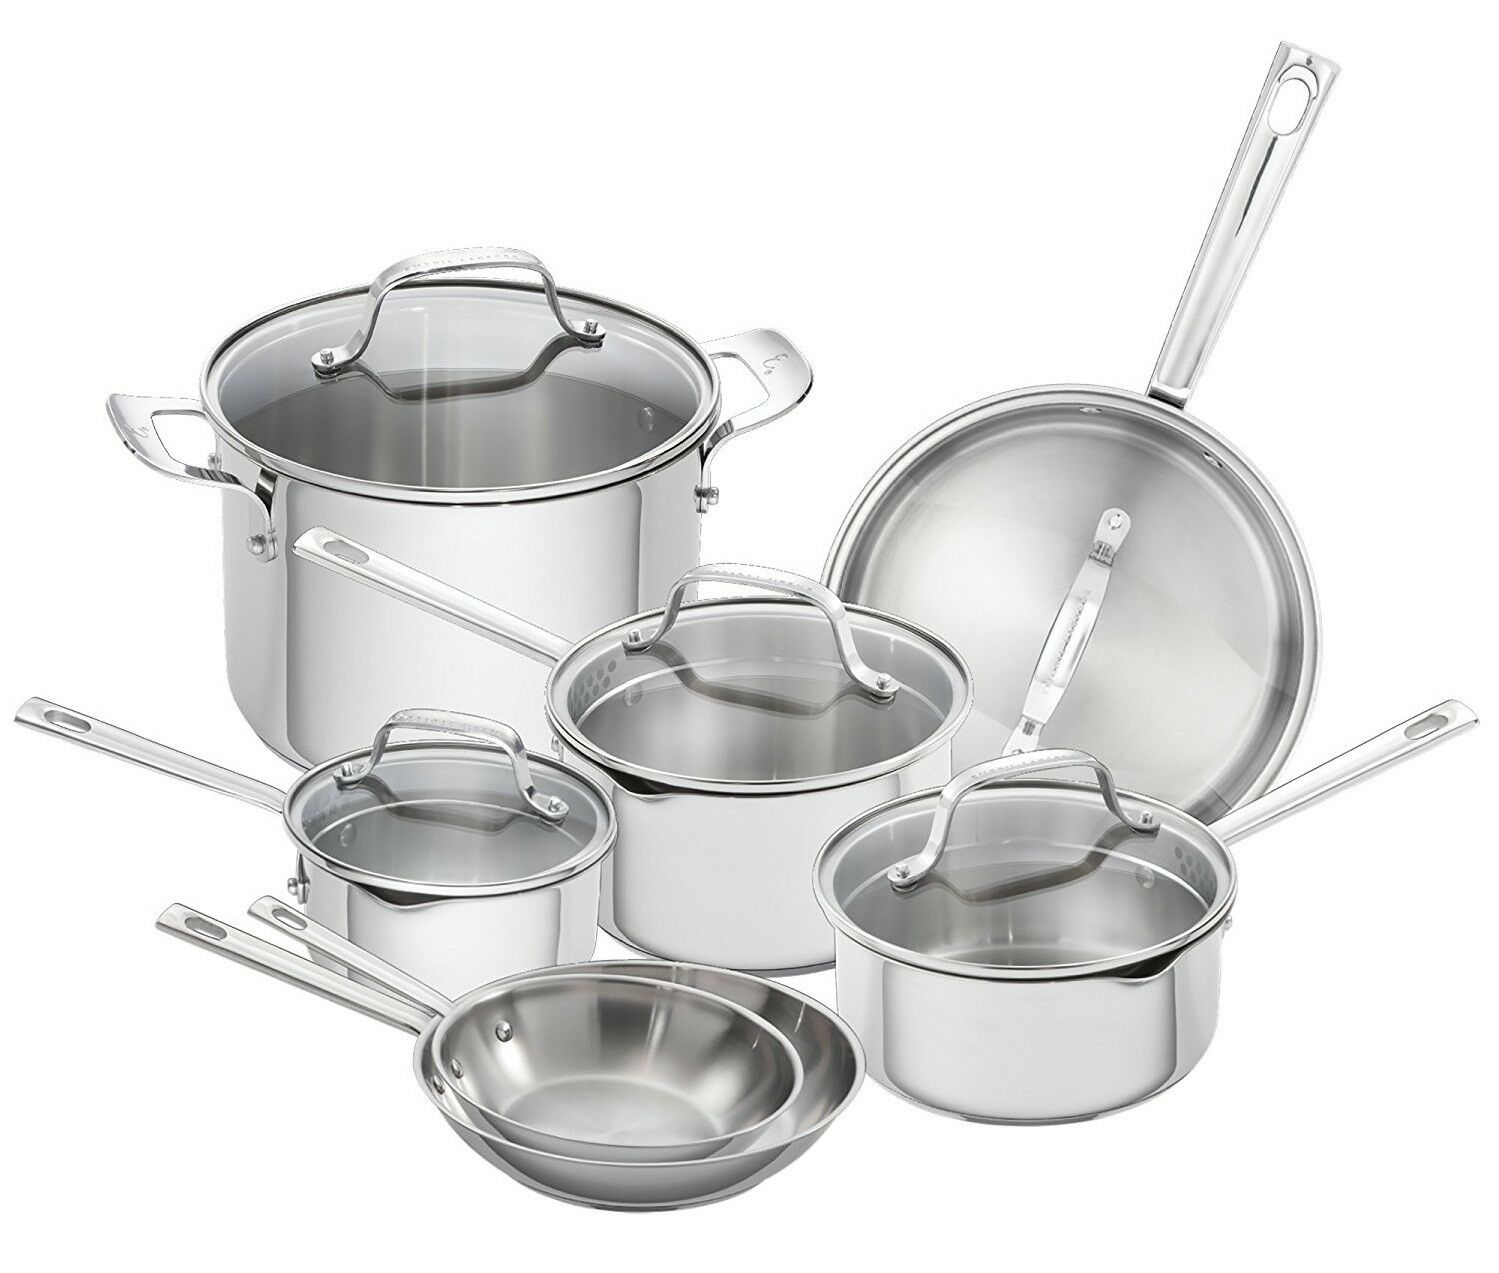 Emeril Lagasse 12 Piece Stainless Steel Induction Safe Cookware Set NEW